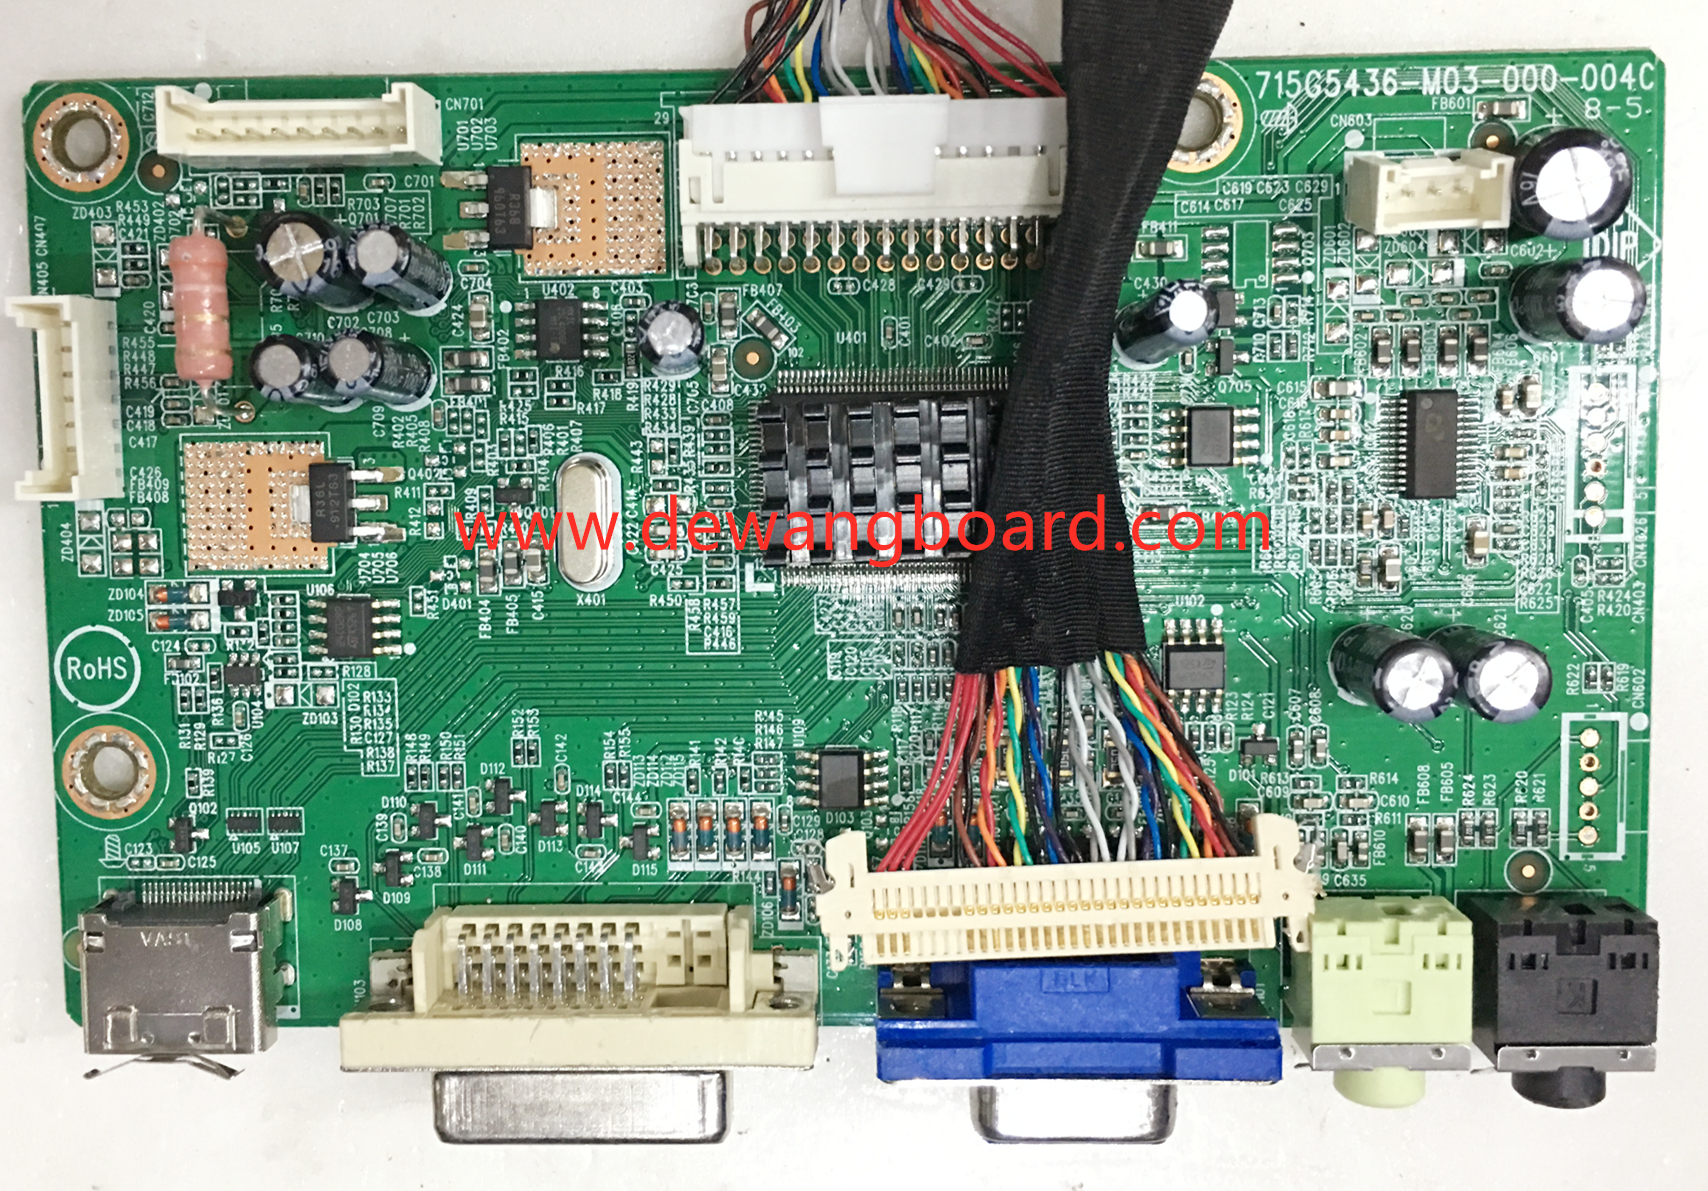 philips 273V5 main board 715G5436-M03-000-004C